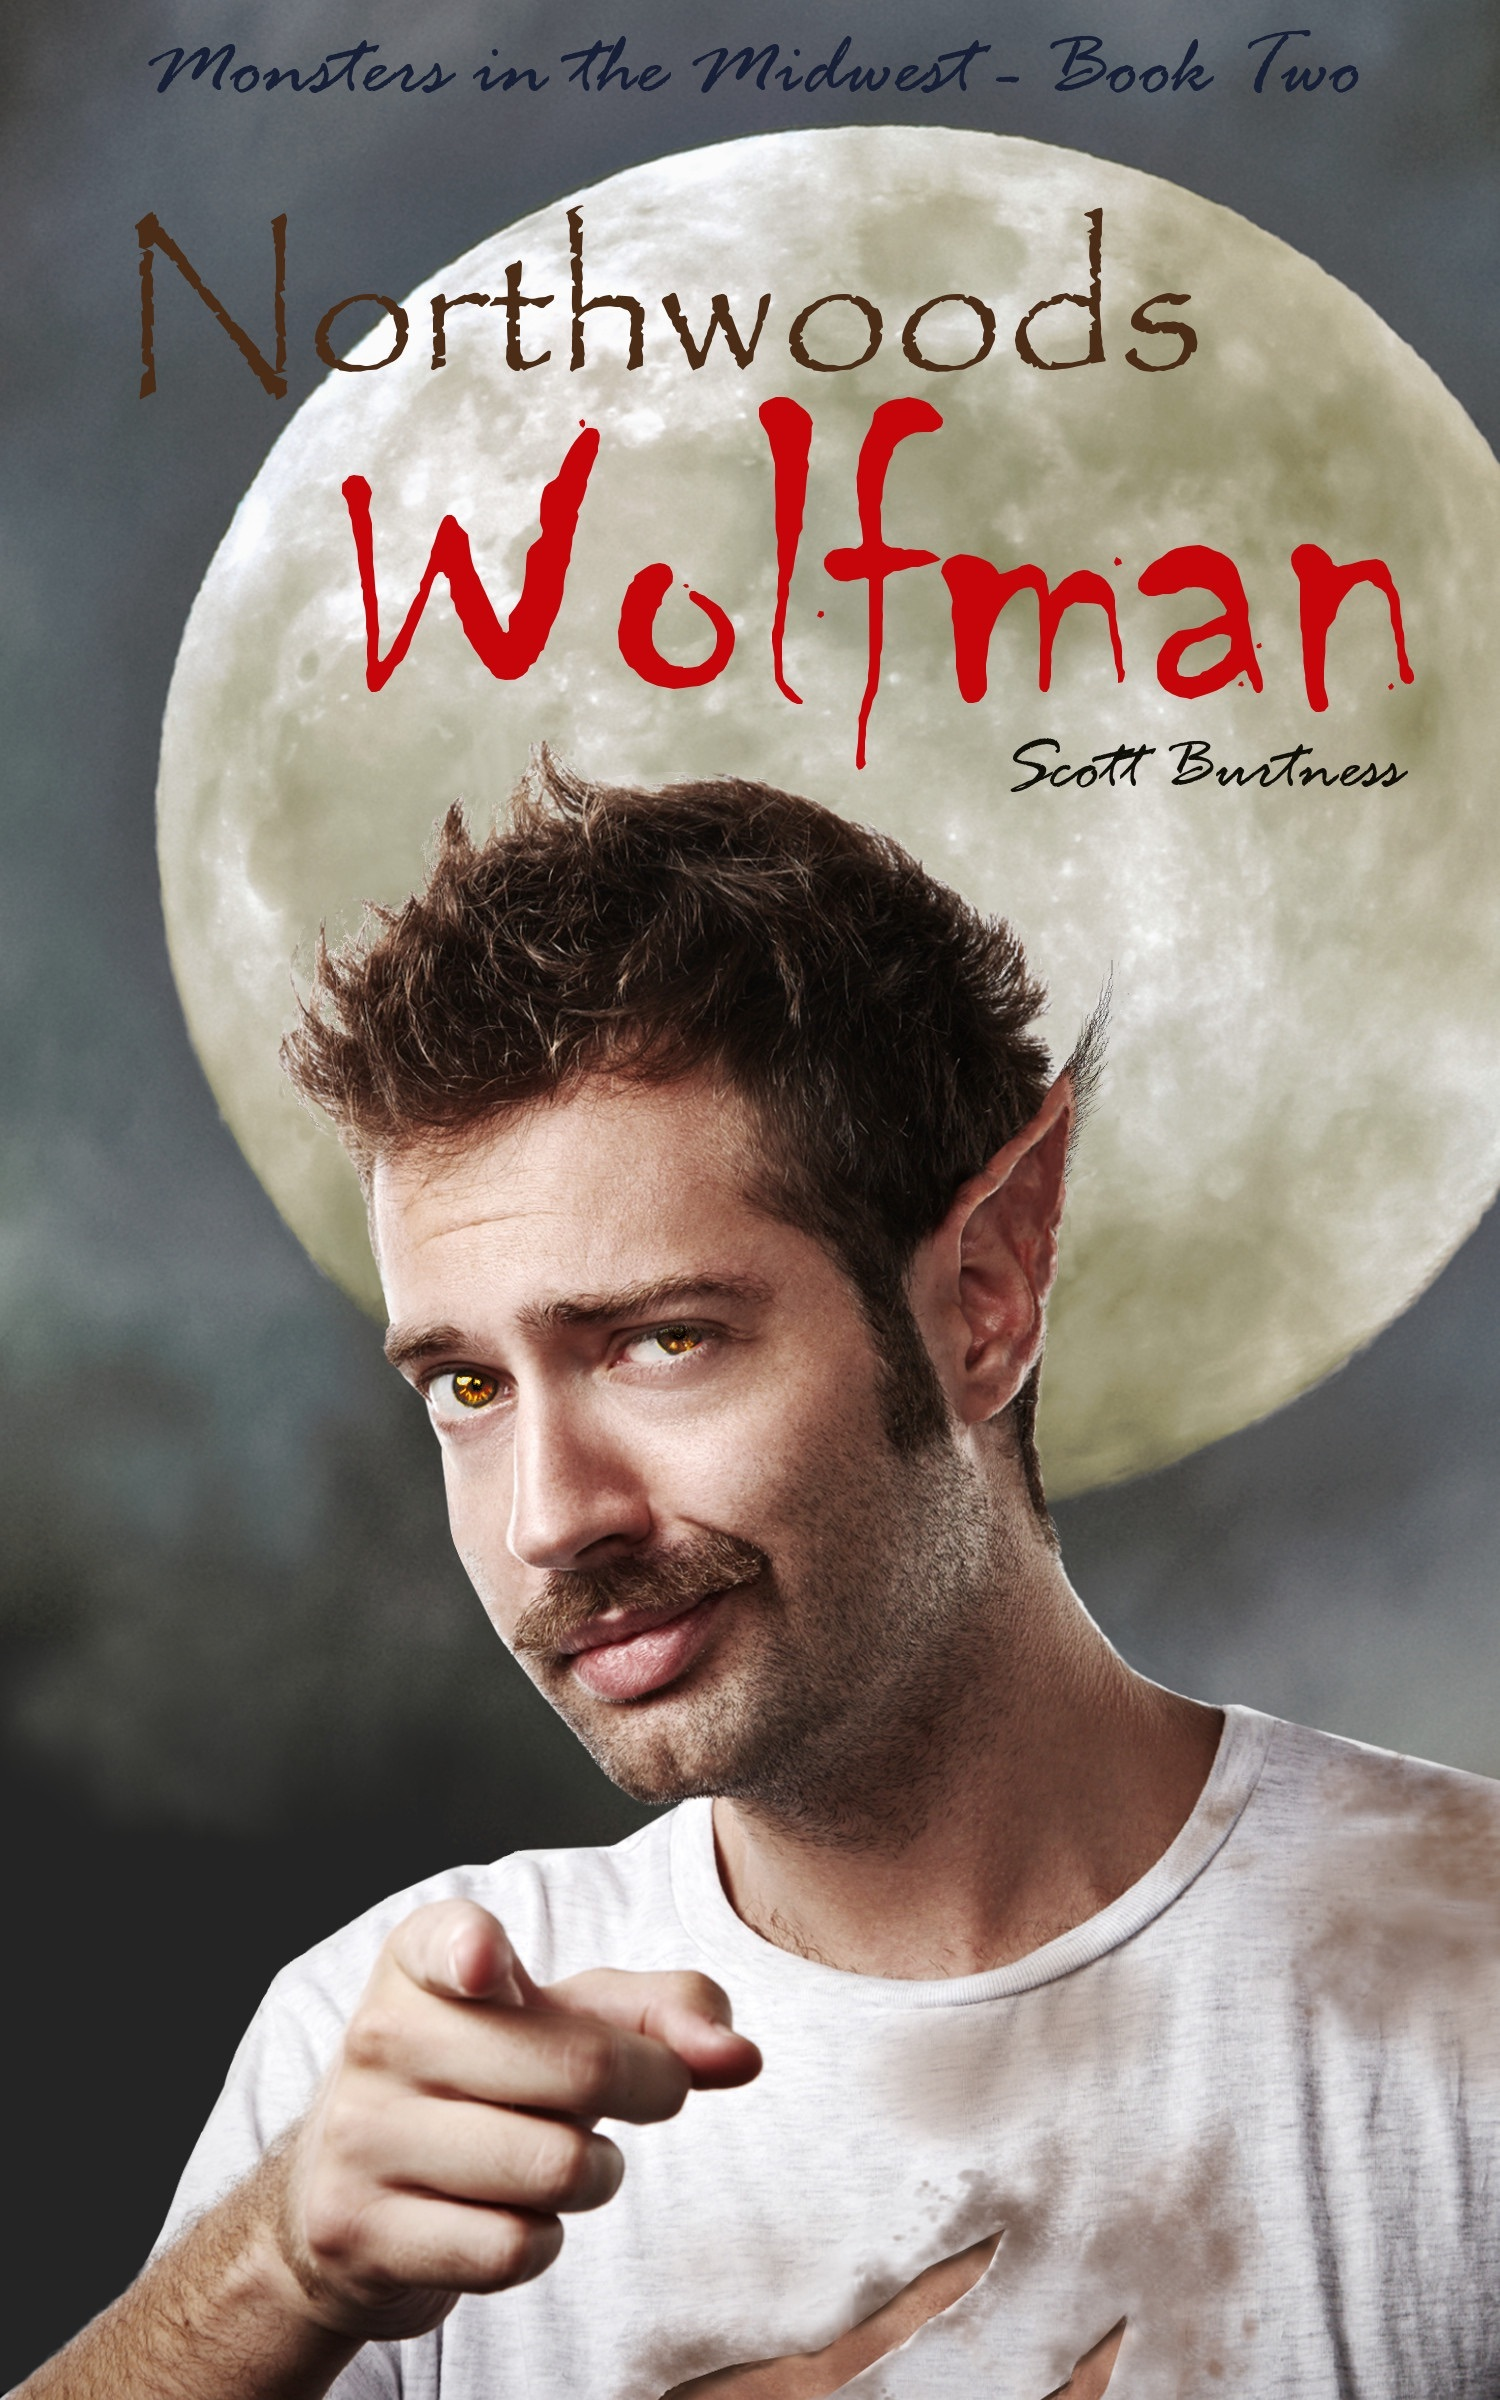 Northwoods Wolfman (Monsters in the Midwest, Book 2) Scott Burtness